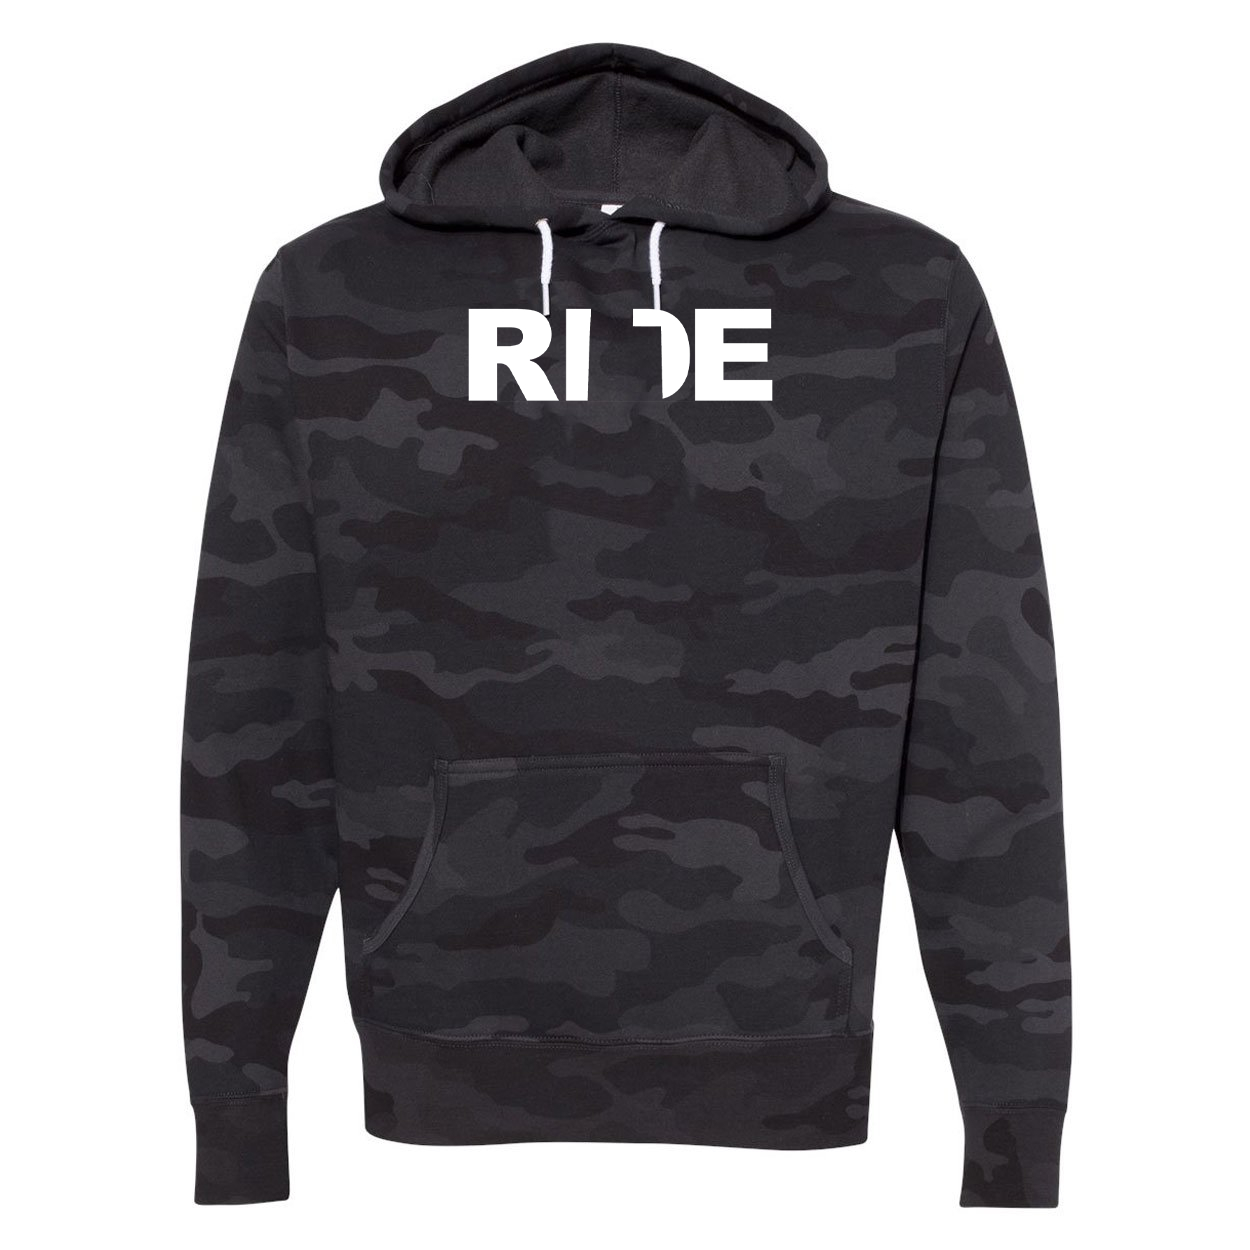 Ride Utah Classic Unisex Hooded Sweatshirt Black Camo (White Logo)